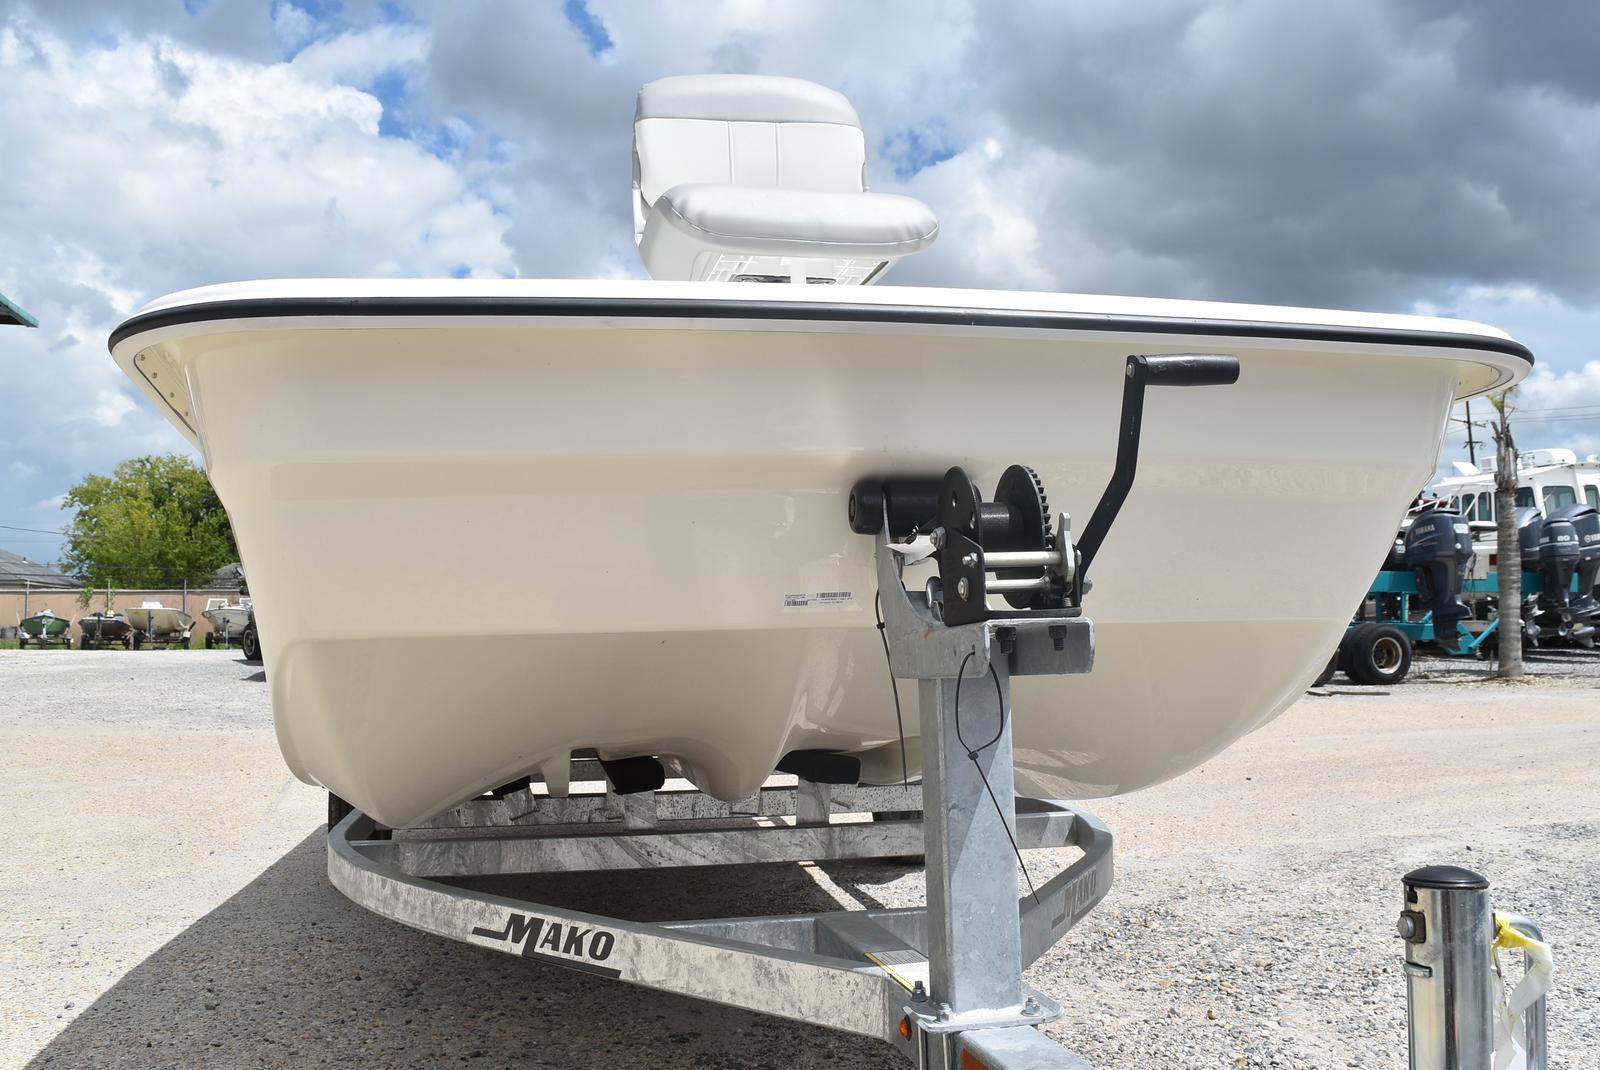 2020 Mako boat for sale, model of the boat is Pro Skiff 17, 75 ELPT & Image # 373 of 702